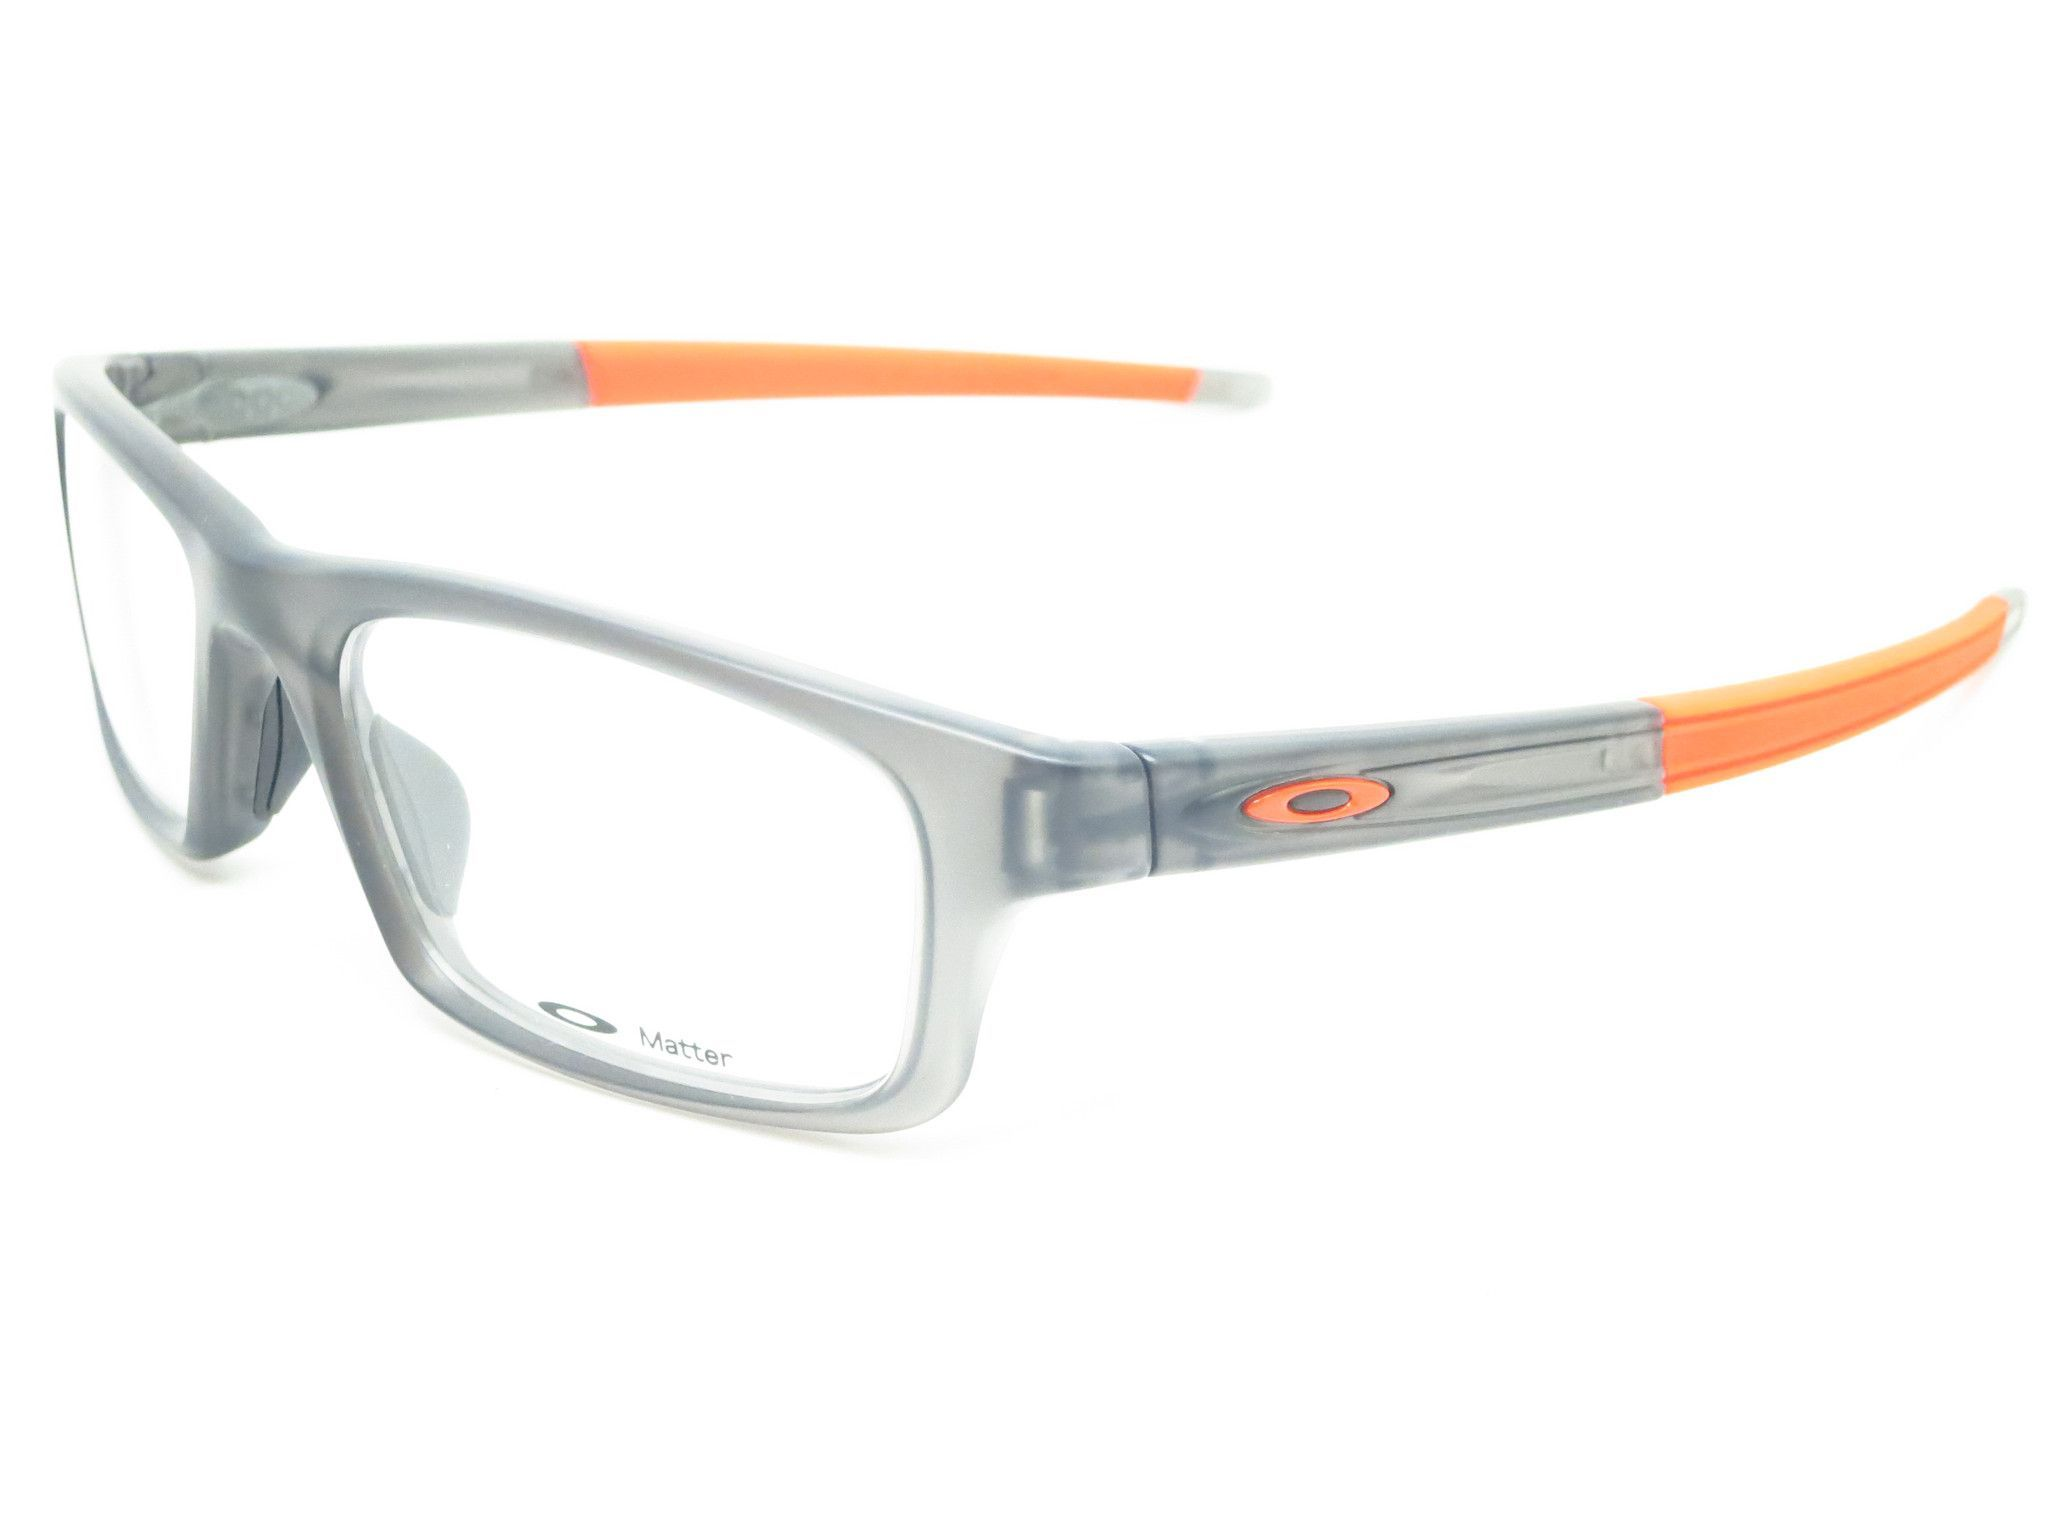 b75d5ff675 Features of the Oakley Crosslink Pitch - Engineered of light weight O  Matter material, 25% lighter & 2 times stronger than acetate - Adjustable  ...